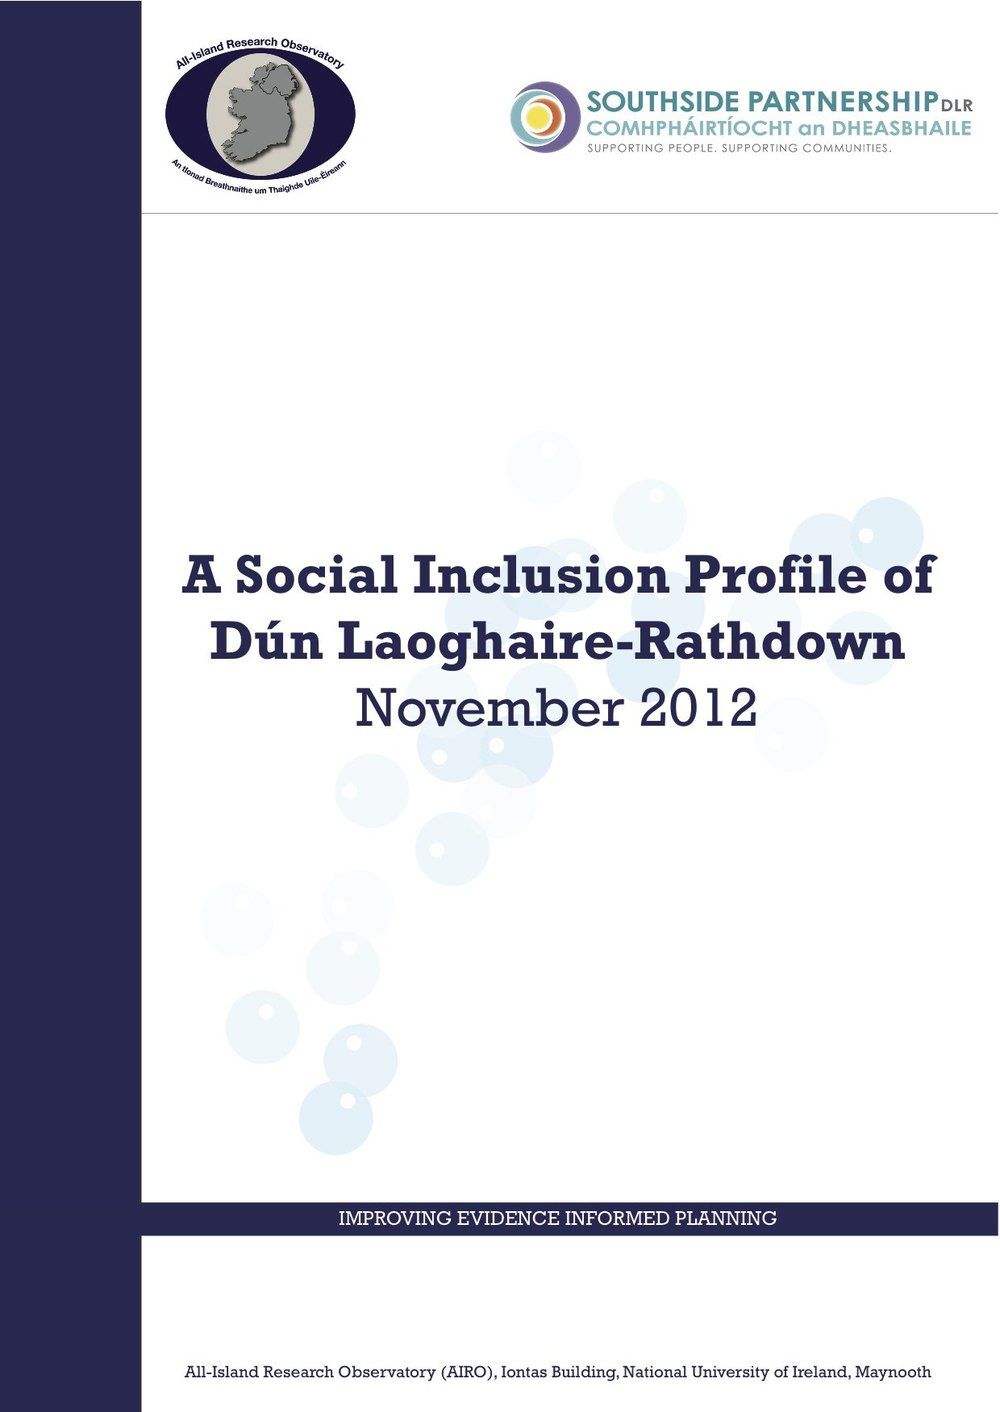 Social Inclusion Profile